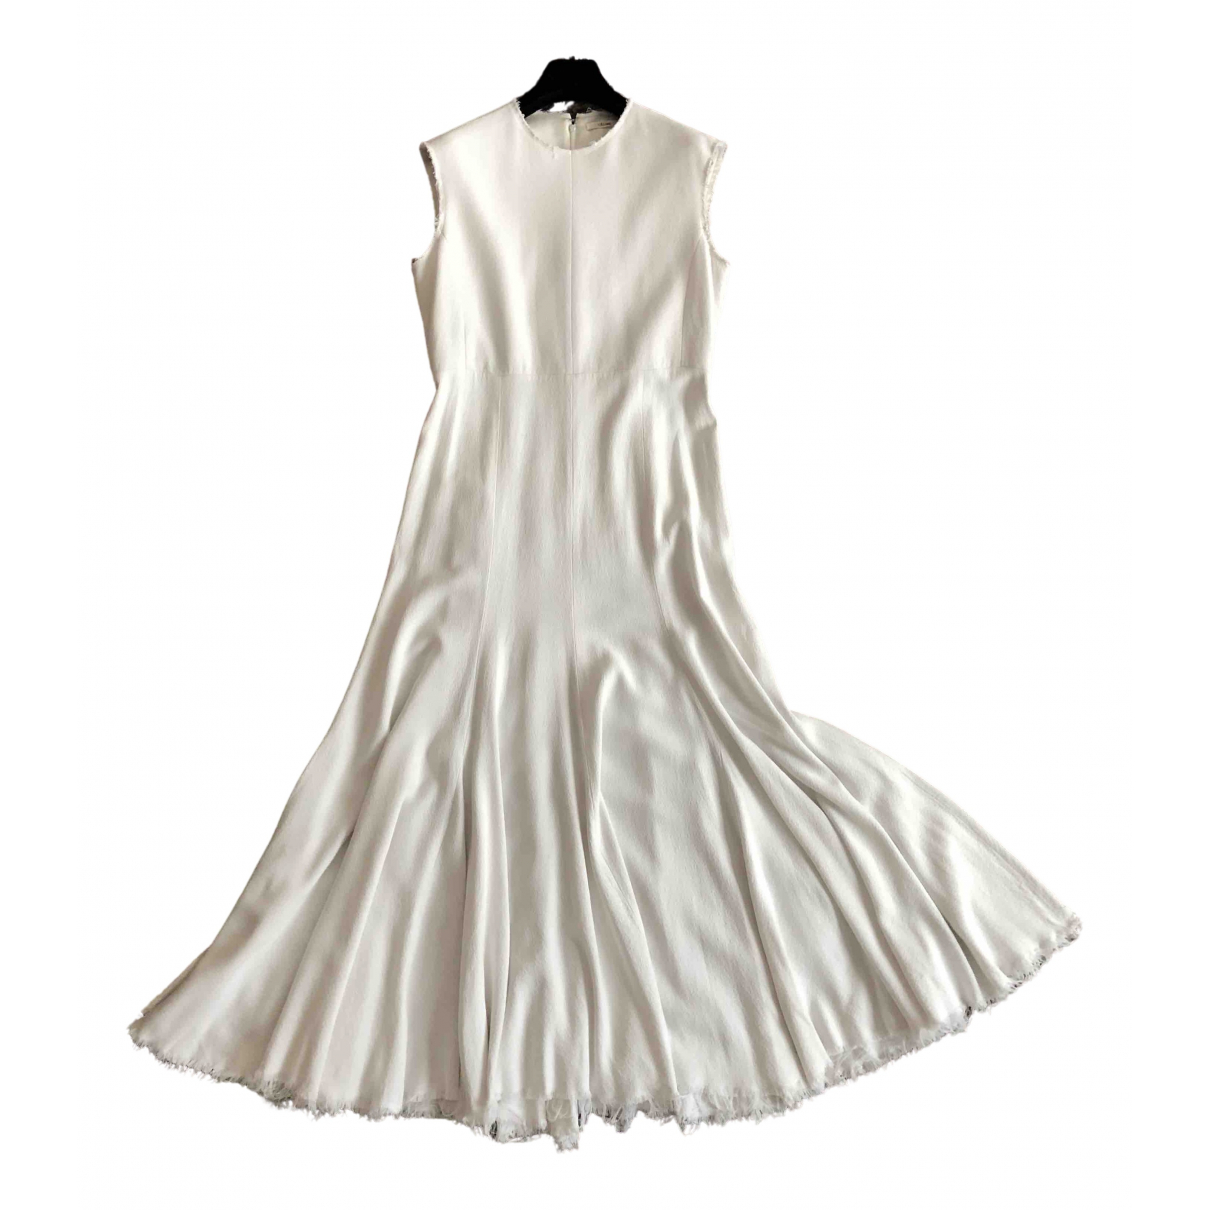 Celine \N White dress for Women 42 FR